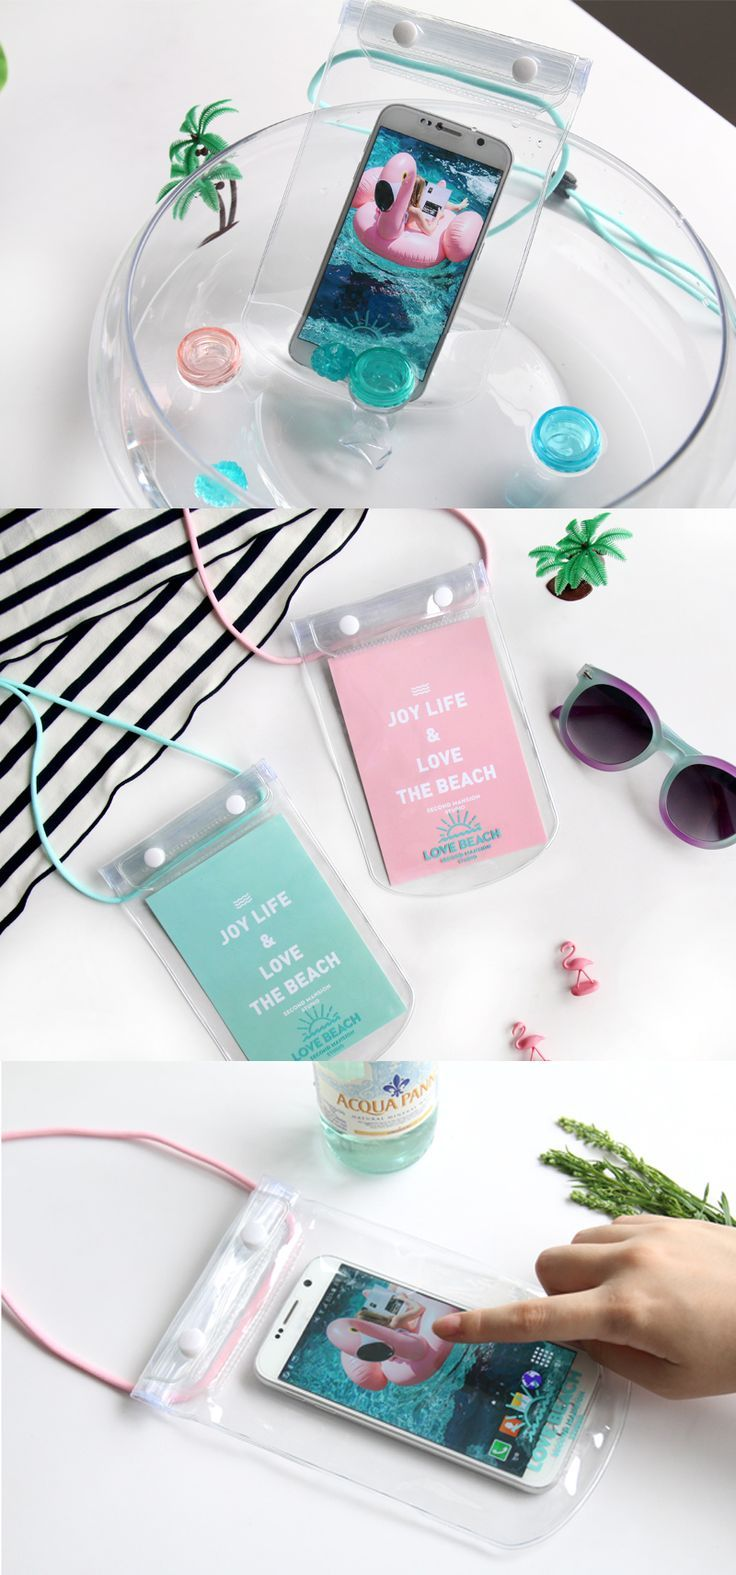 25 Best Bottle Rock Necessities Images On Pinterest Clothing Apparel Feminine Fashion And